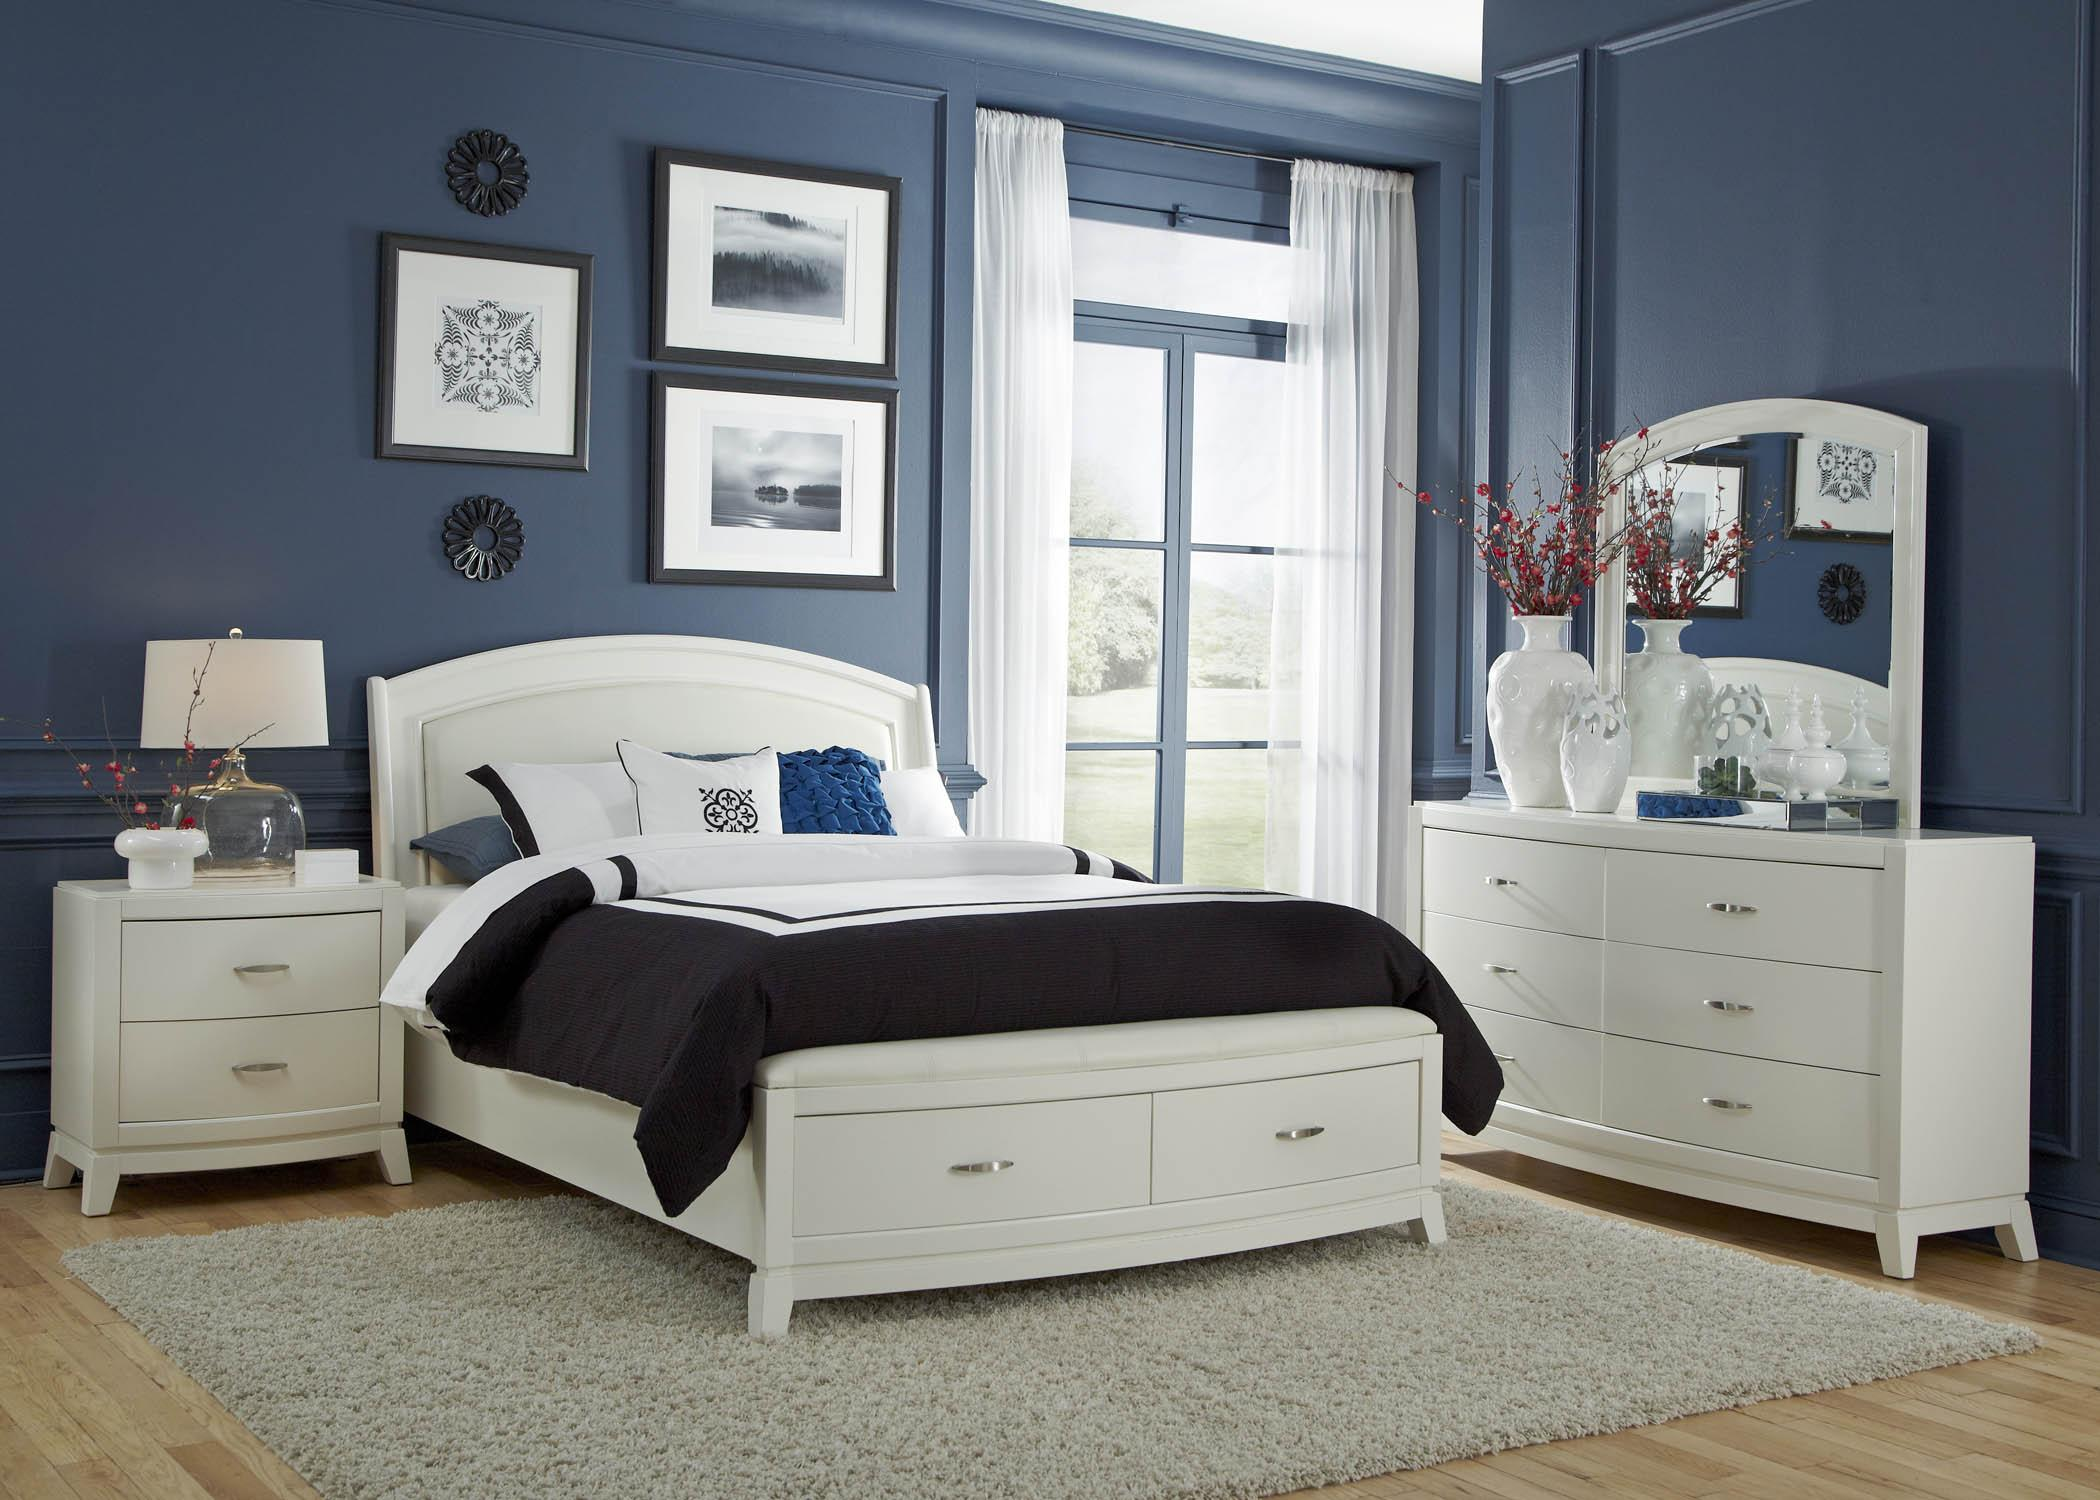 Liberty Furniture Avalon II King Bedroom Group 3 - Item Number: 205-BR-KSBDMN